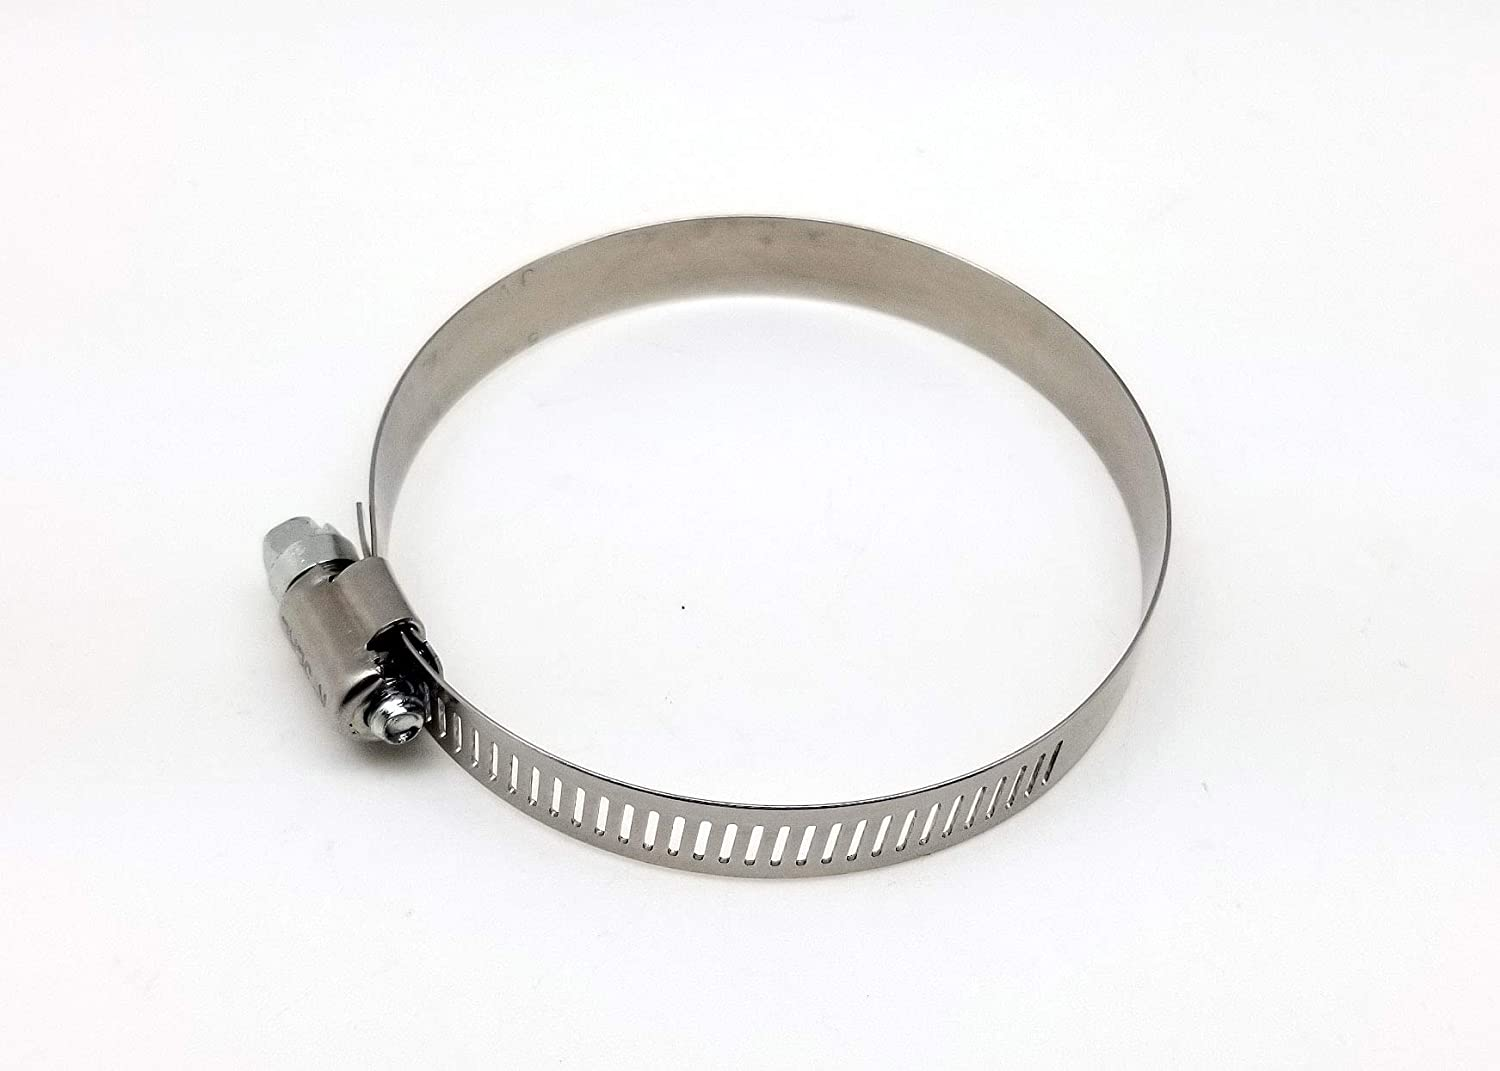 92-100mm Fit for Hose OD Size = Autobahn88 Stainless Steel Hose T-Bolt Clamp Hose Plumbing Pack of 2 for Fuel Pump Filter 3.6-3.9 Inch